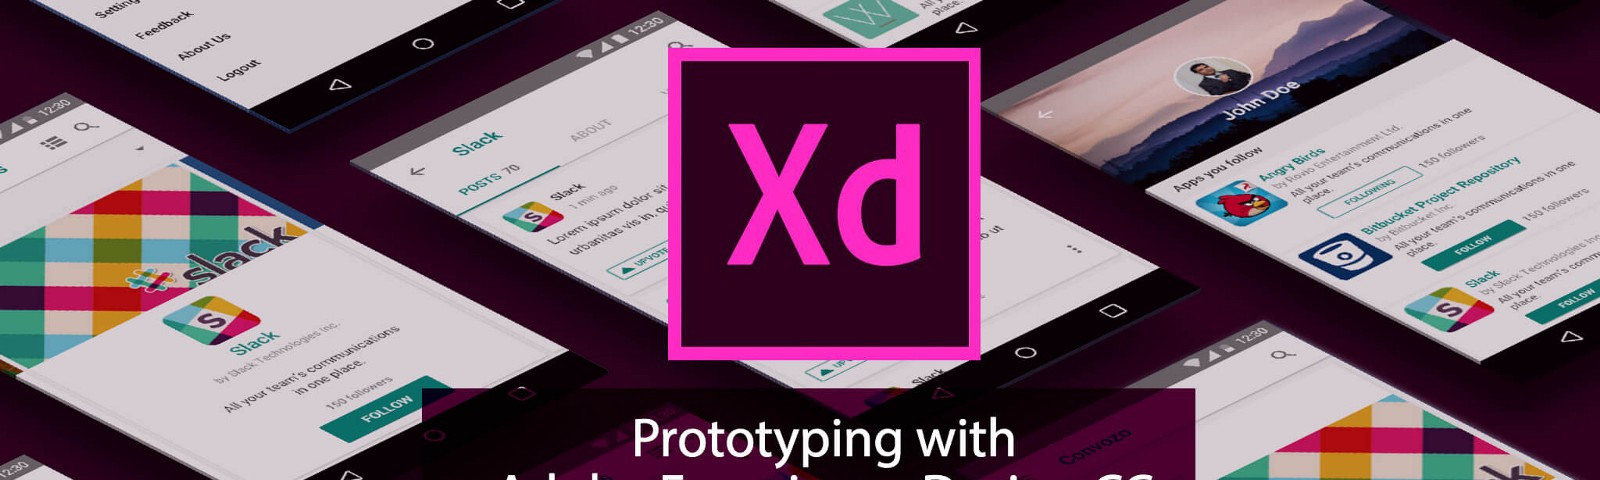 Prototyping-with-Adobe-XD